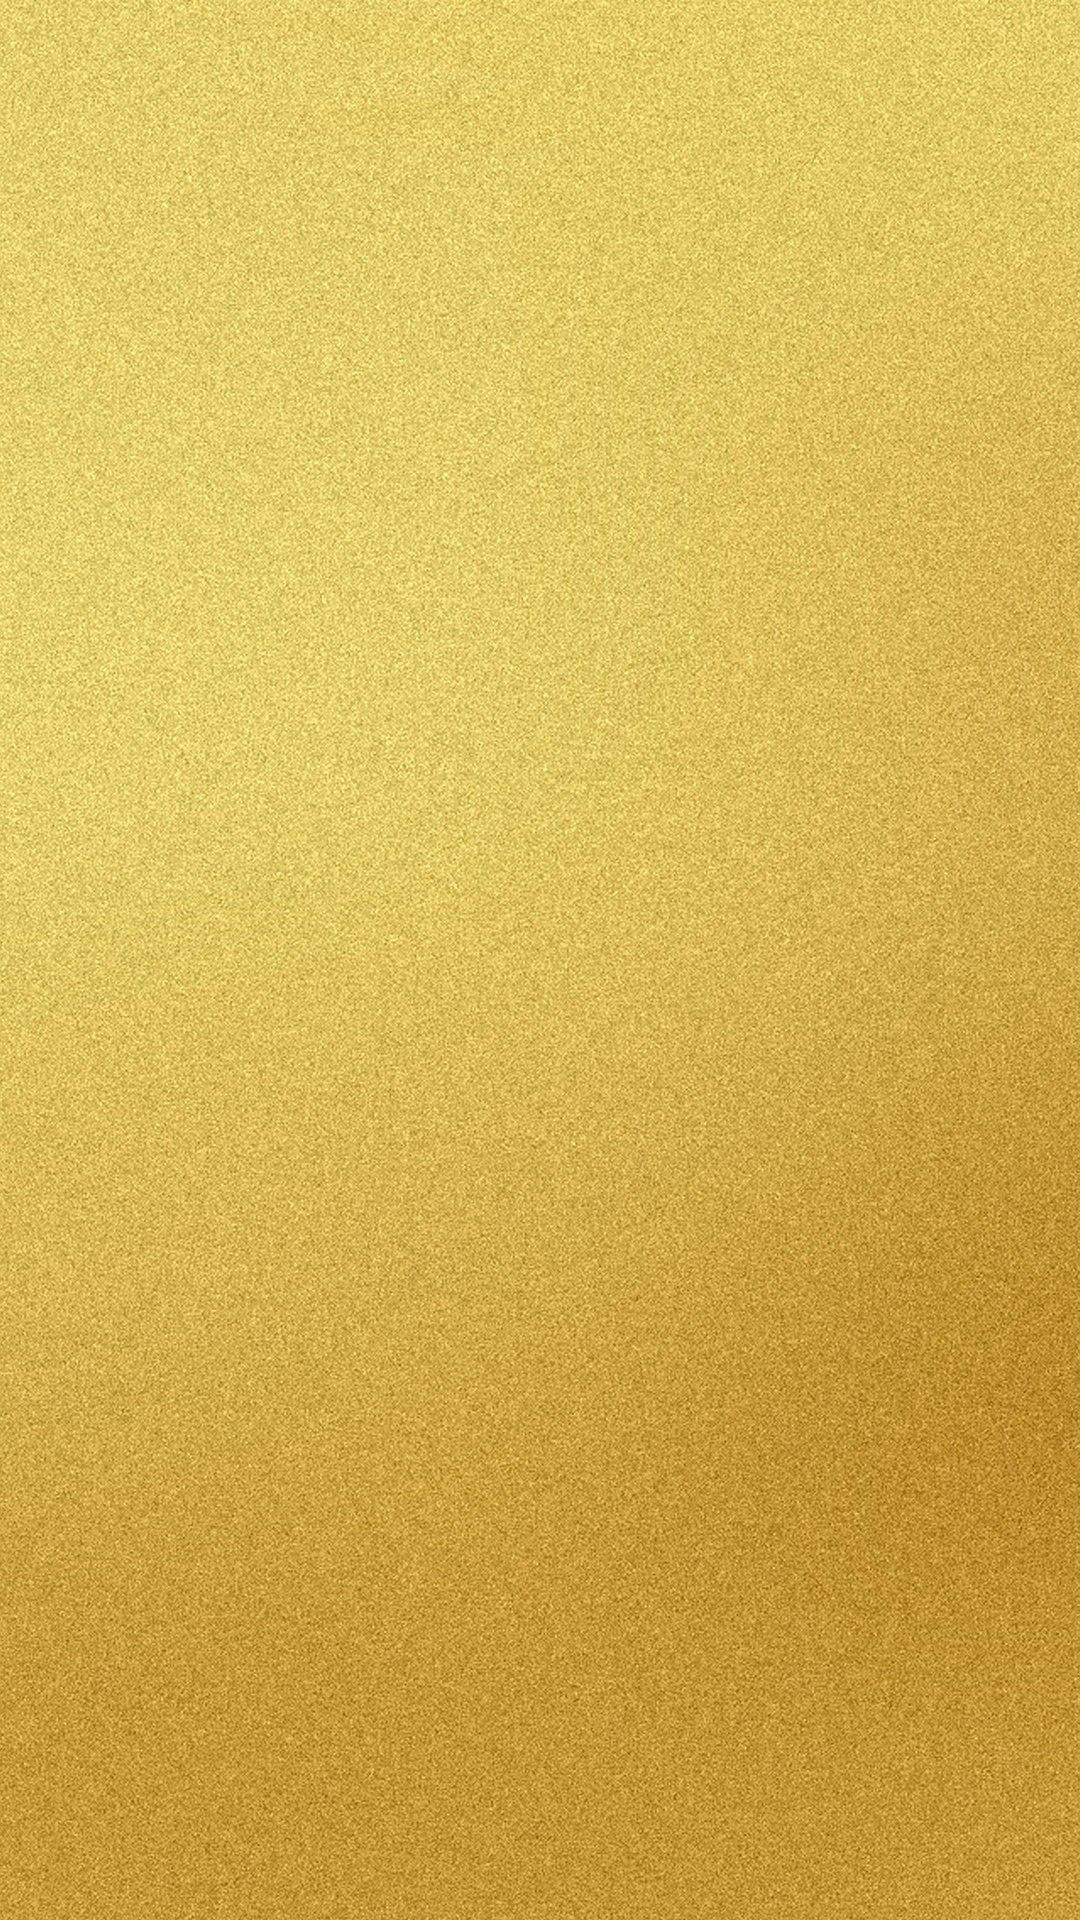 Plain gold wallpaper